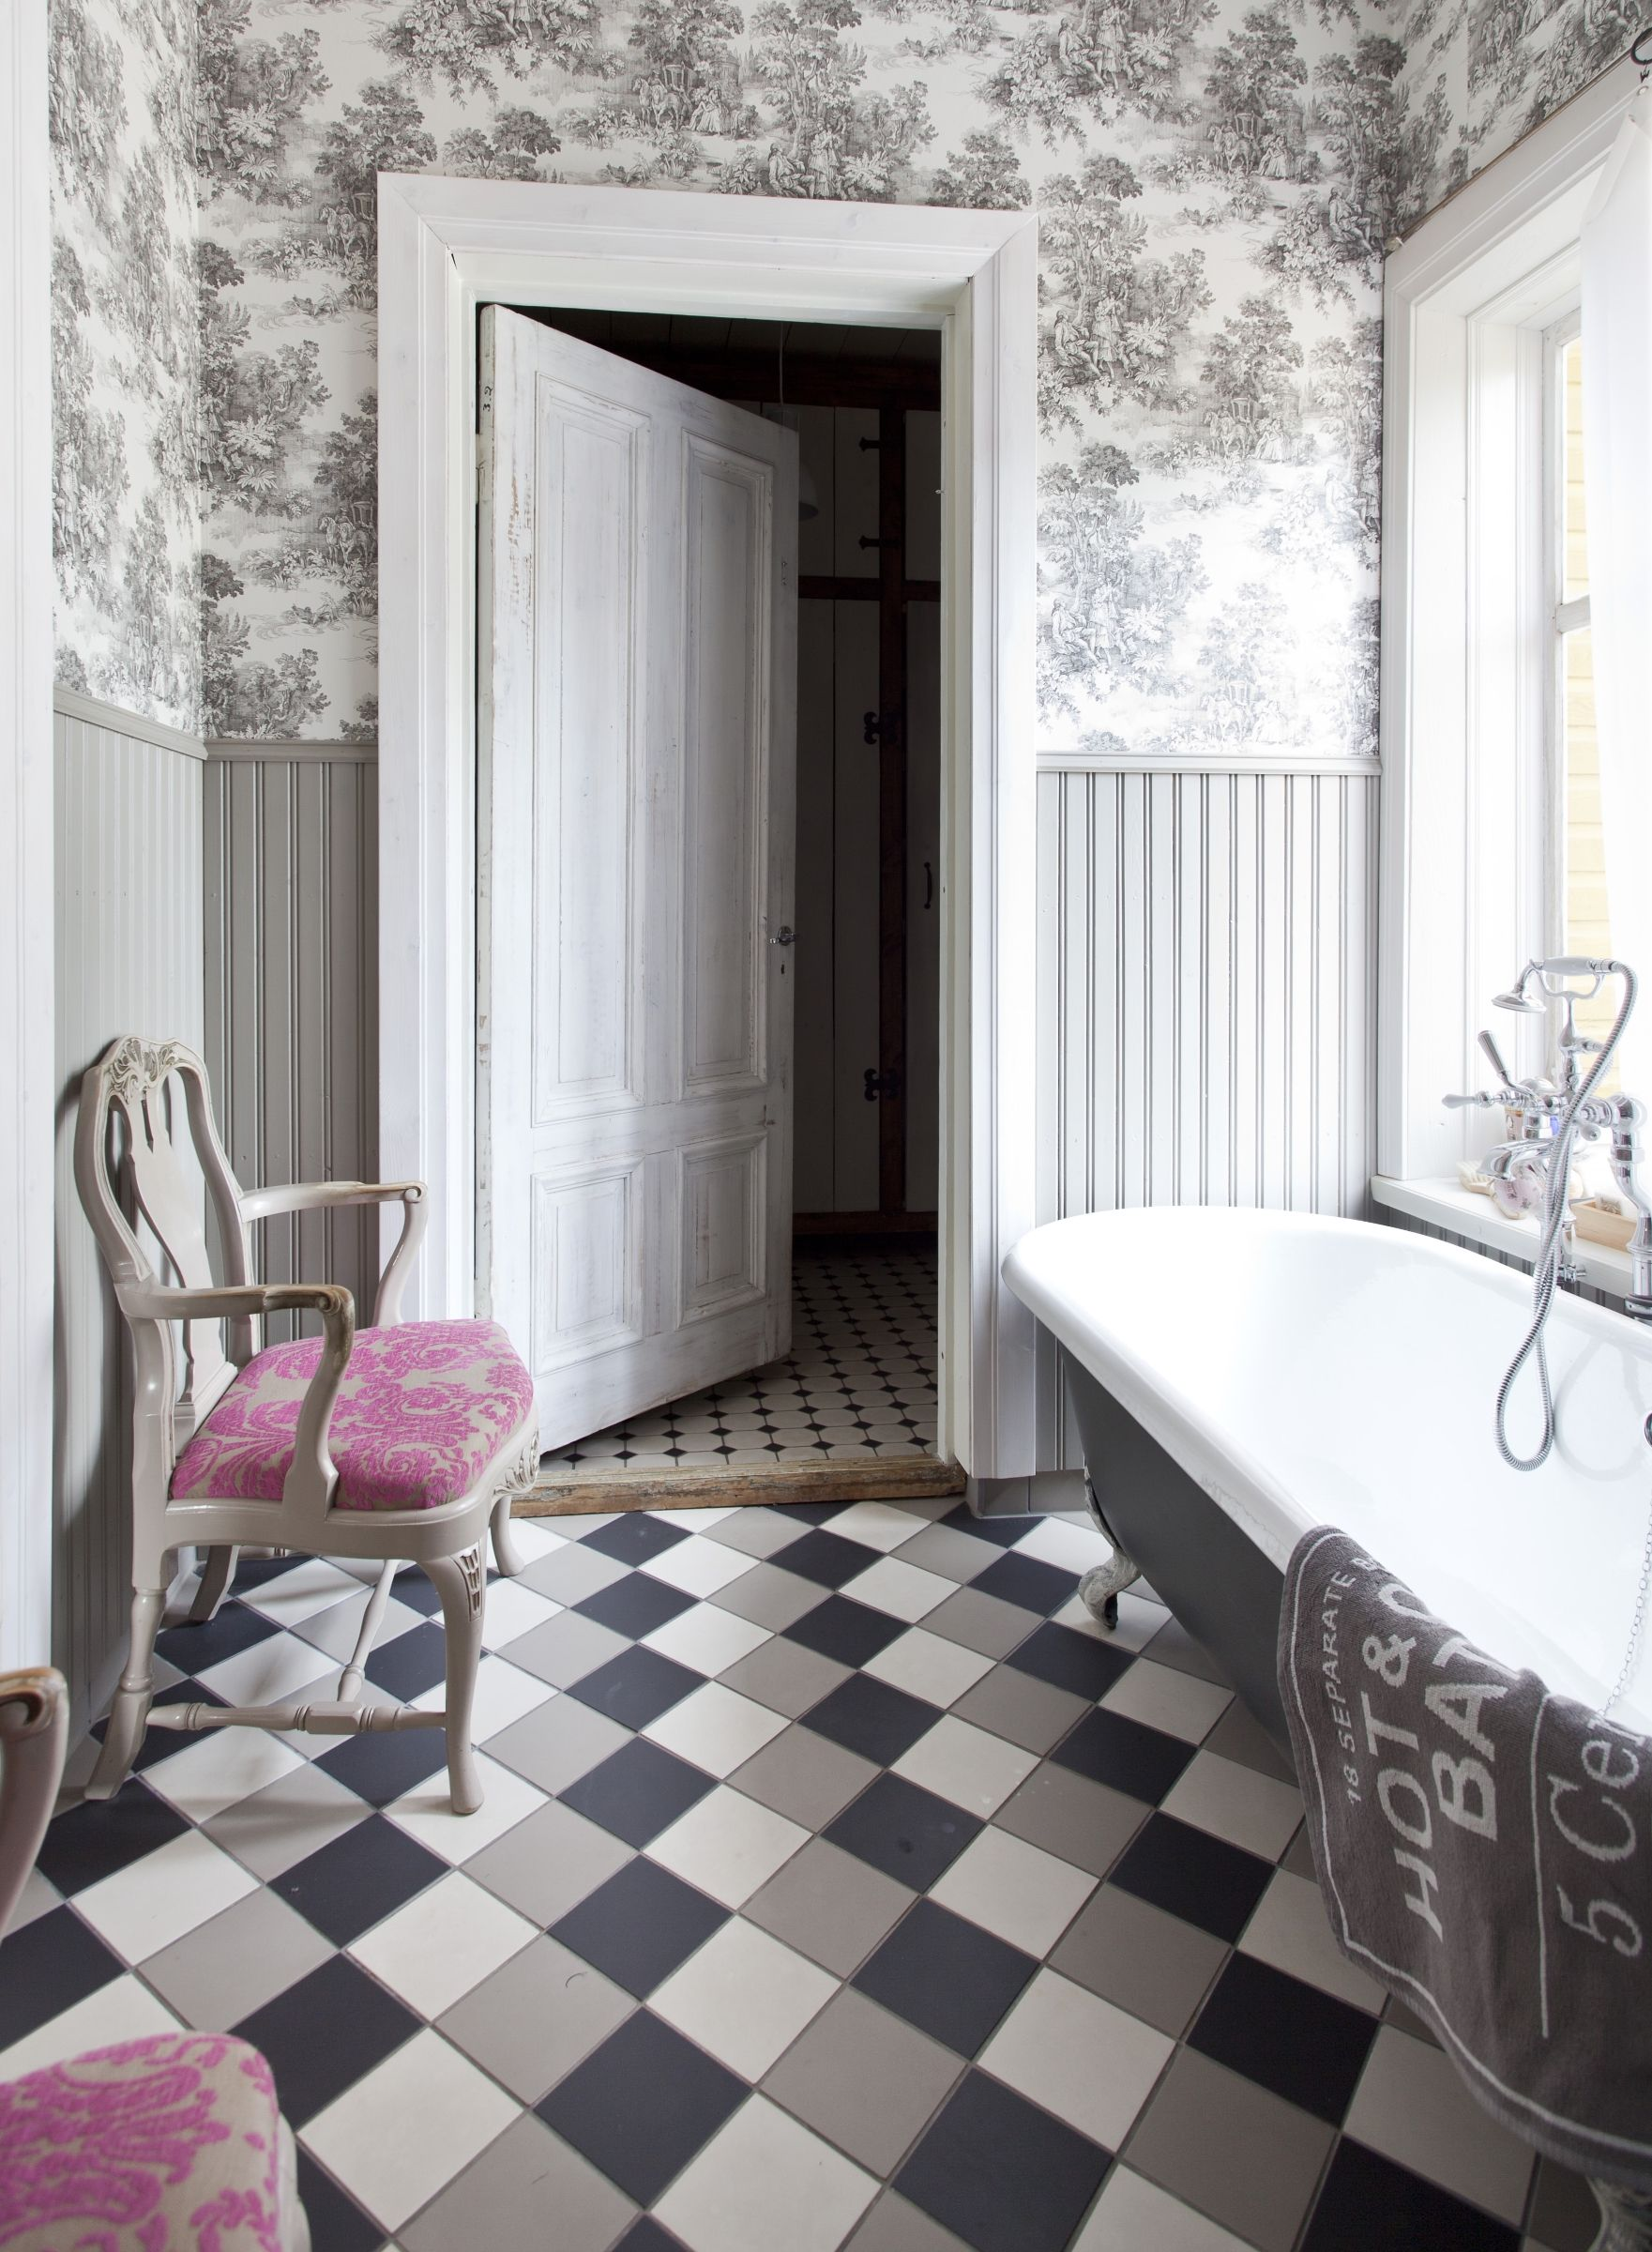 Vanhan talon kylpyhuoneessa on tapettiseinät, tyylihuonekaluja ja ruutulattia. Bathroom with toille wallpapers, check floor and rococo chairs.  | Unelmien Talo&Koti Kuva: Camilla Hynynen Toimittaja: Jaana Tapio